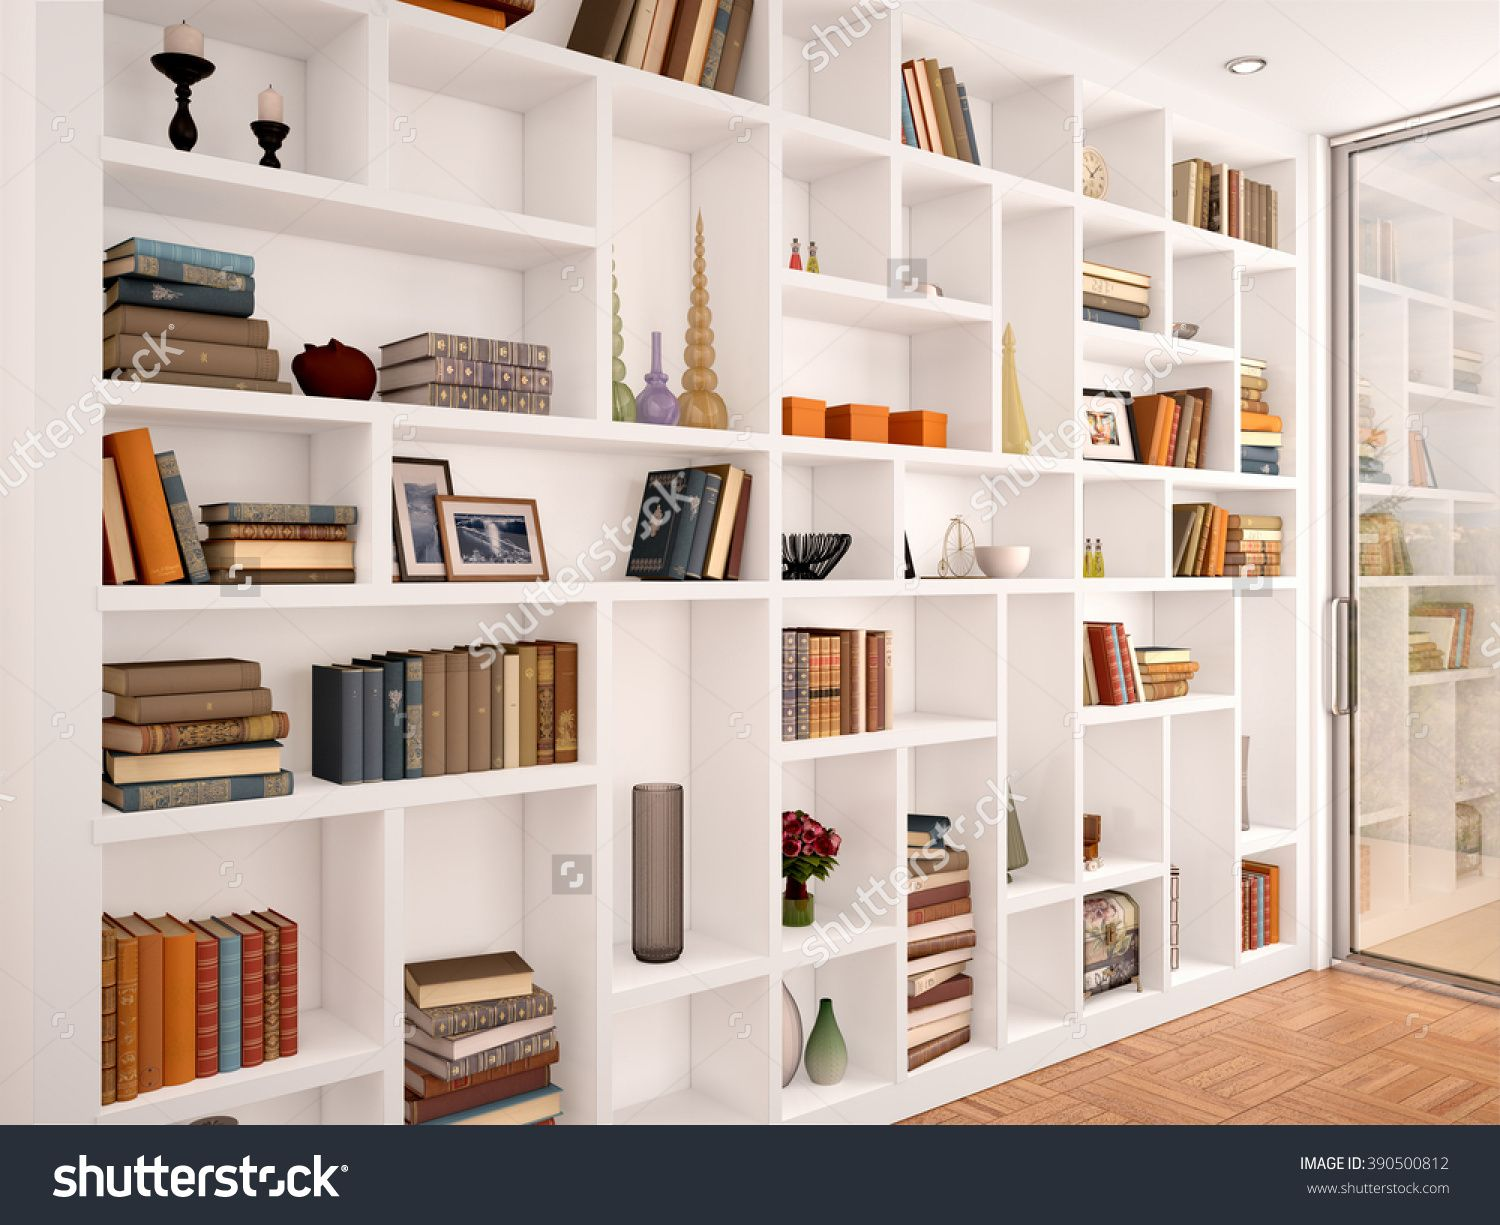 3d Illustration Of White Shelves In The Interior With